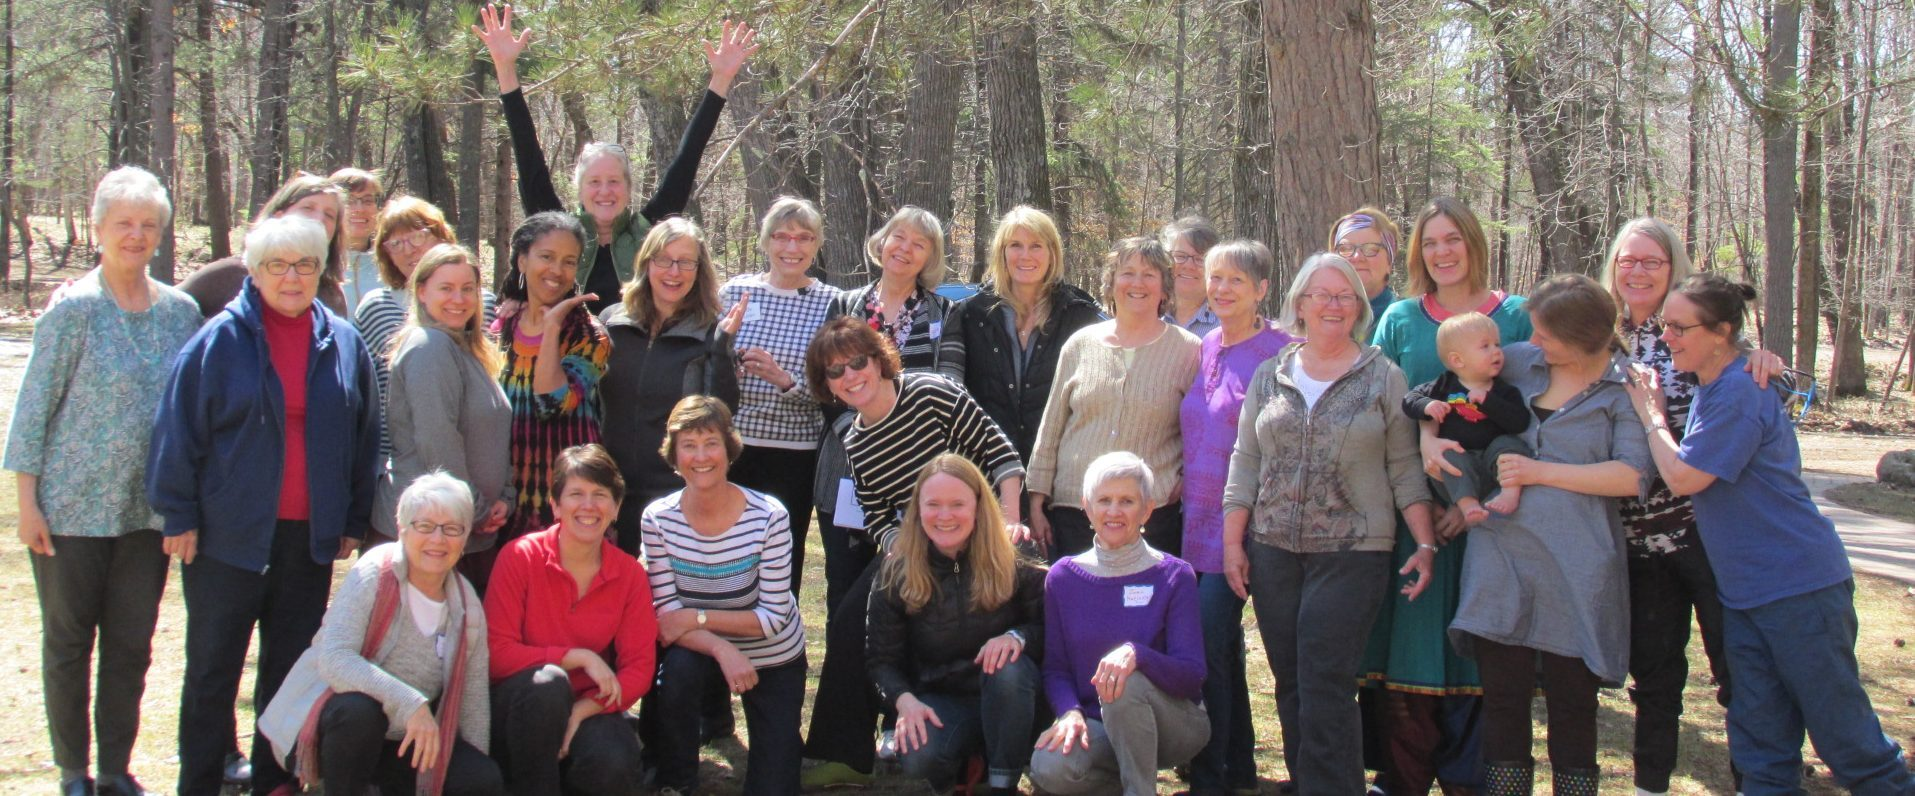 Group at Women's Retreat